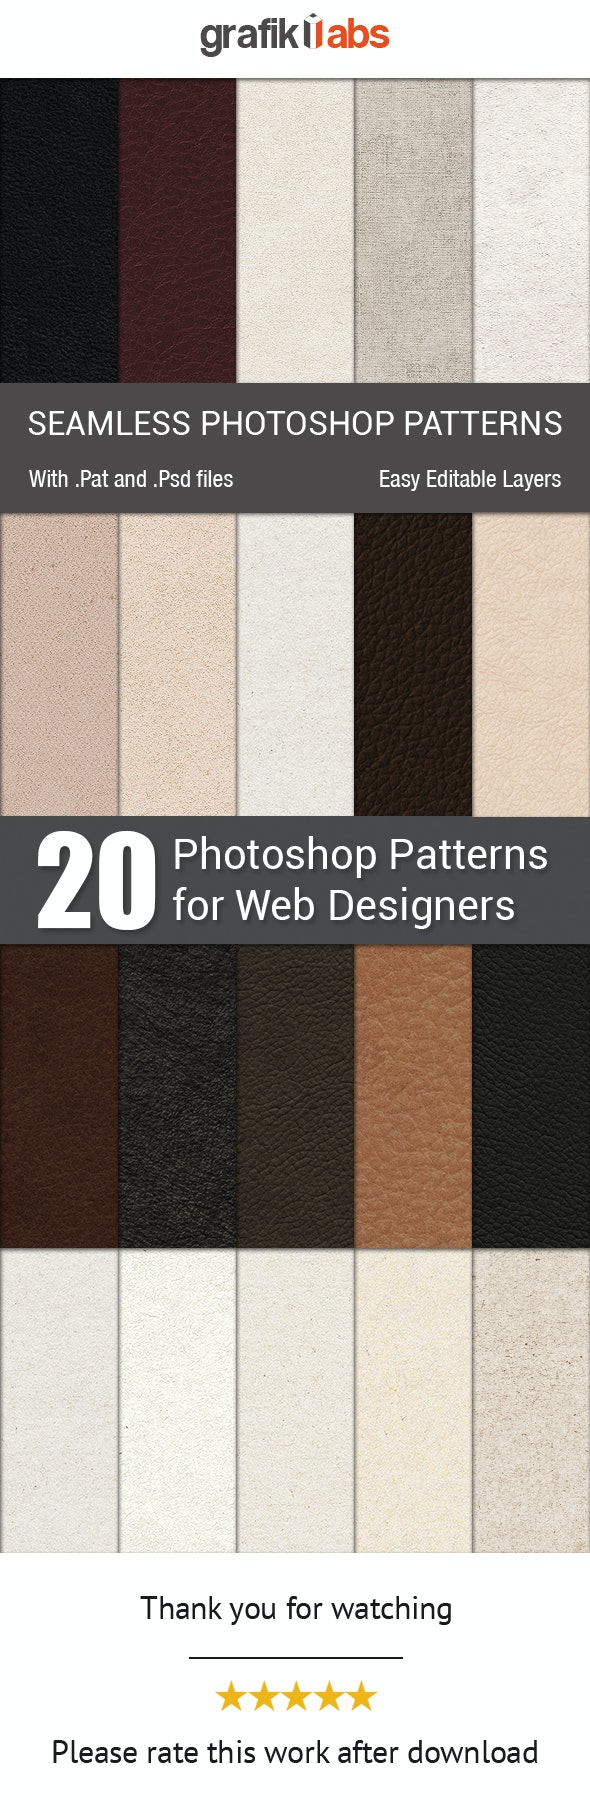 Seamless Patterns for Designers - Textures / Fills / Patterns Photoshop